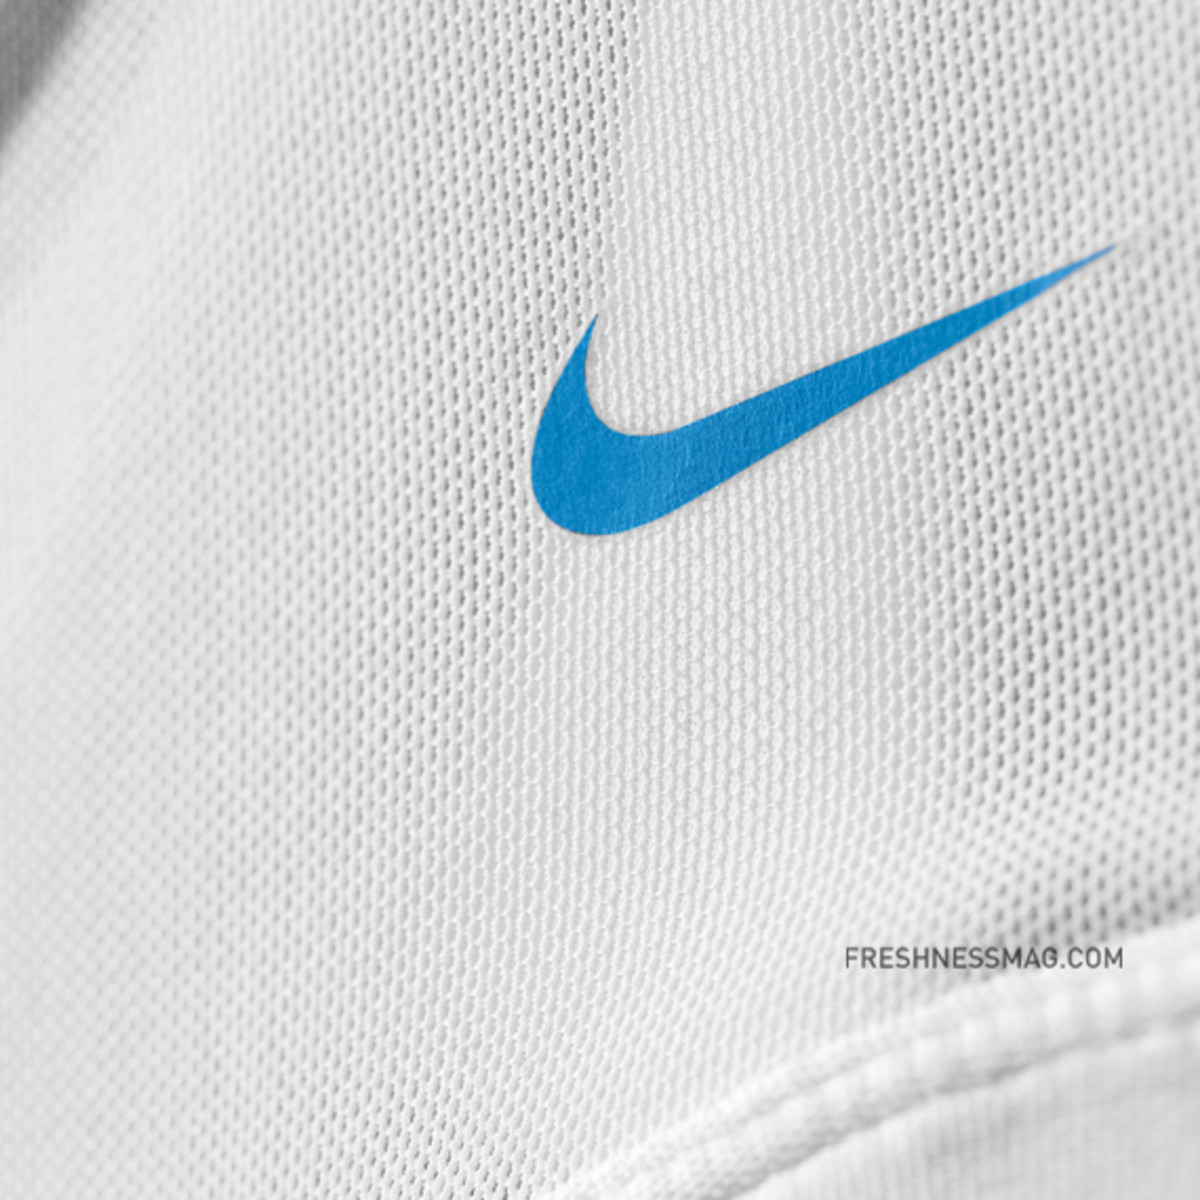 nike-tennis-2011-australian-open-serena-williams-06